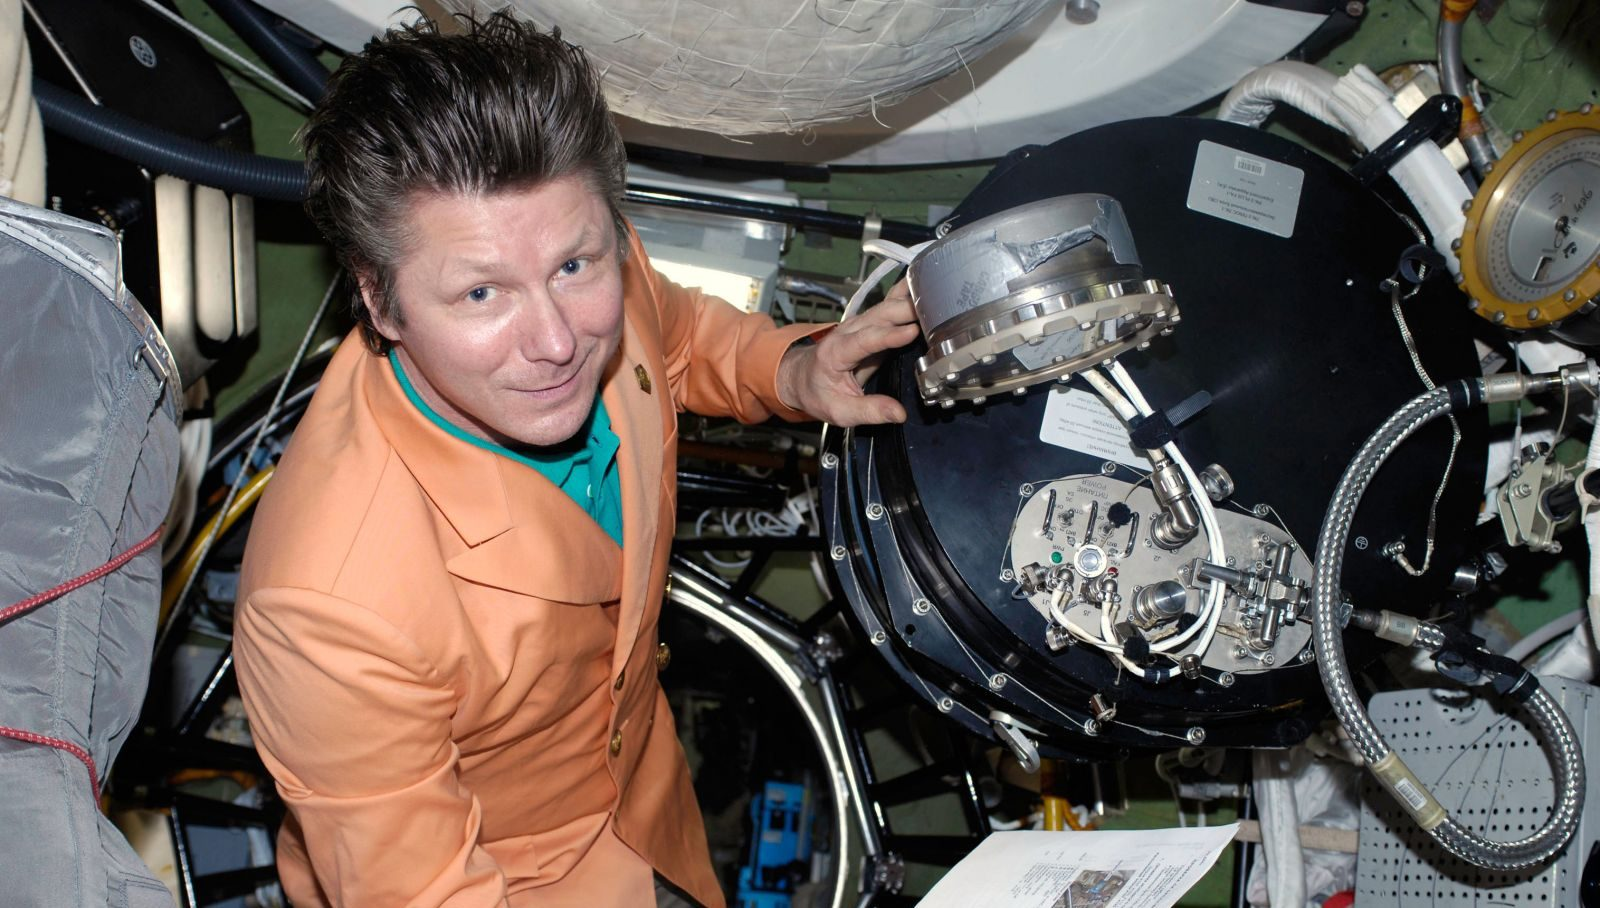 Gennady Padalka in the ISS